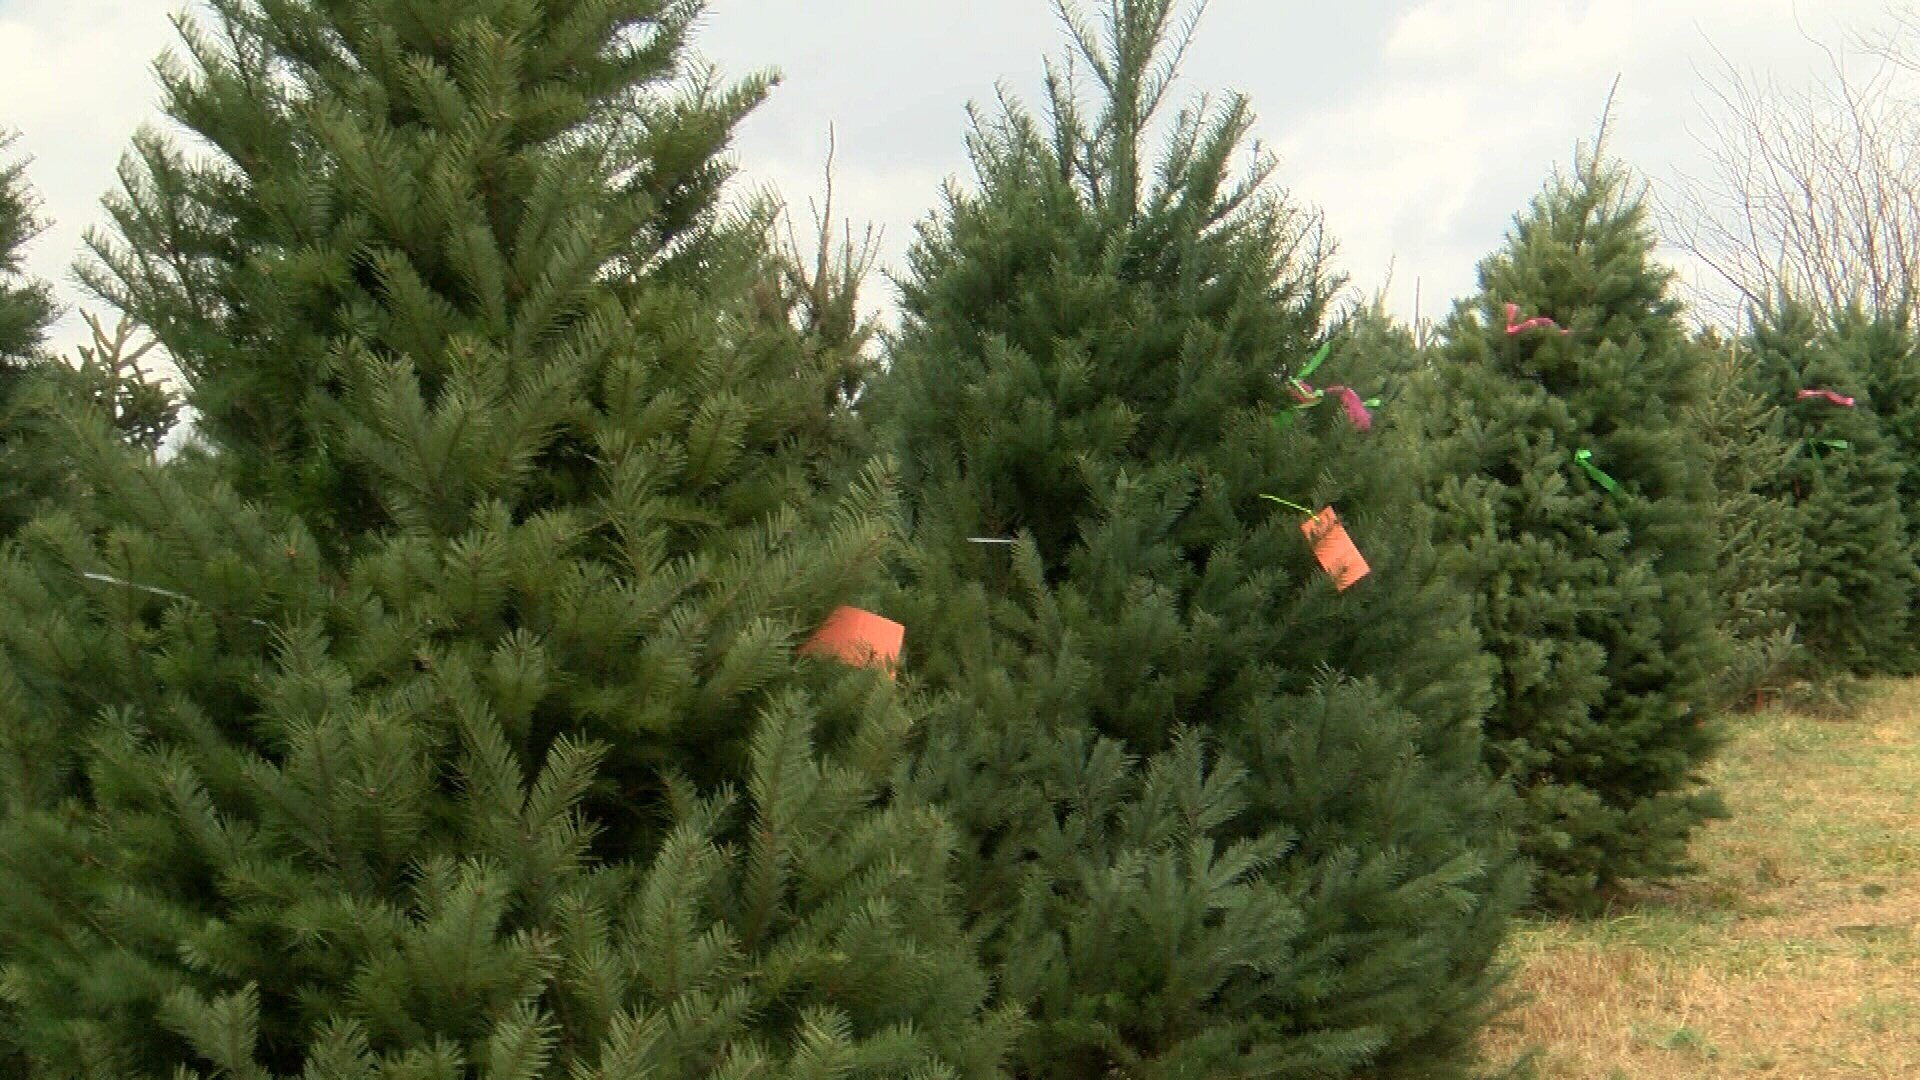 The Camelback Christmas tree returns, just in time for the holidays